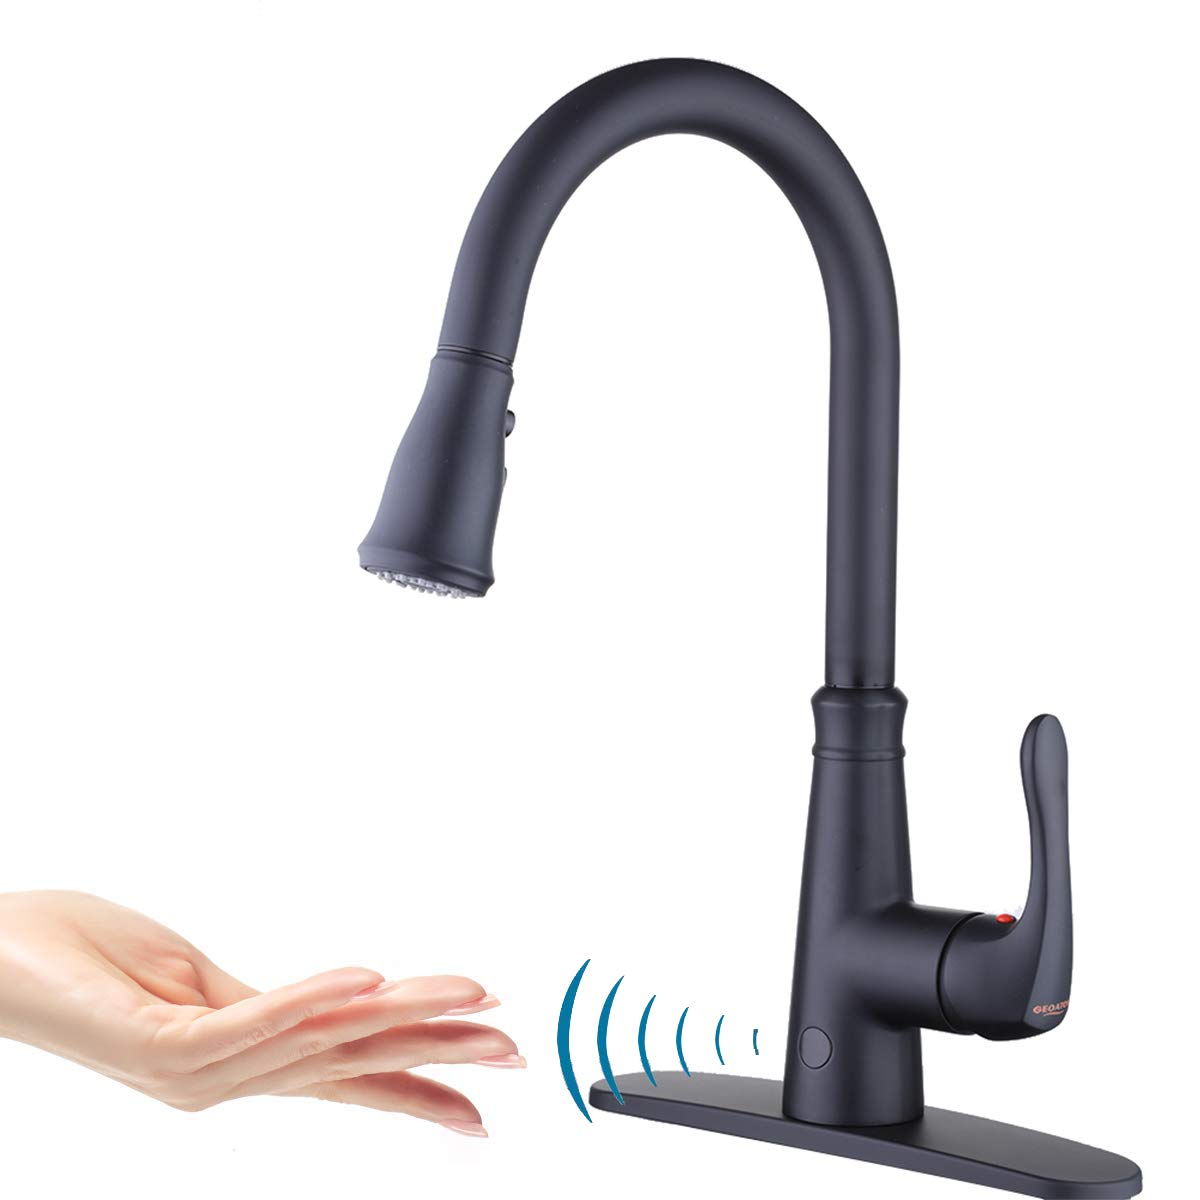 Touchless Kitchen Faucet with PullDown Sprayer,20 Single Kitchen Sink Faucets black Pull Out Sprayer,High Arc Pulldown Single Handle For Motion Sensor,1handle 3 Hole Deck Mount,black (Black) by GEOATON